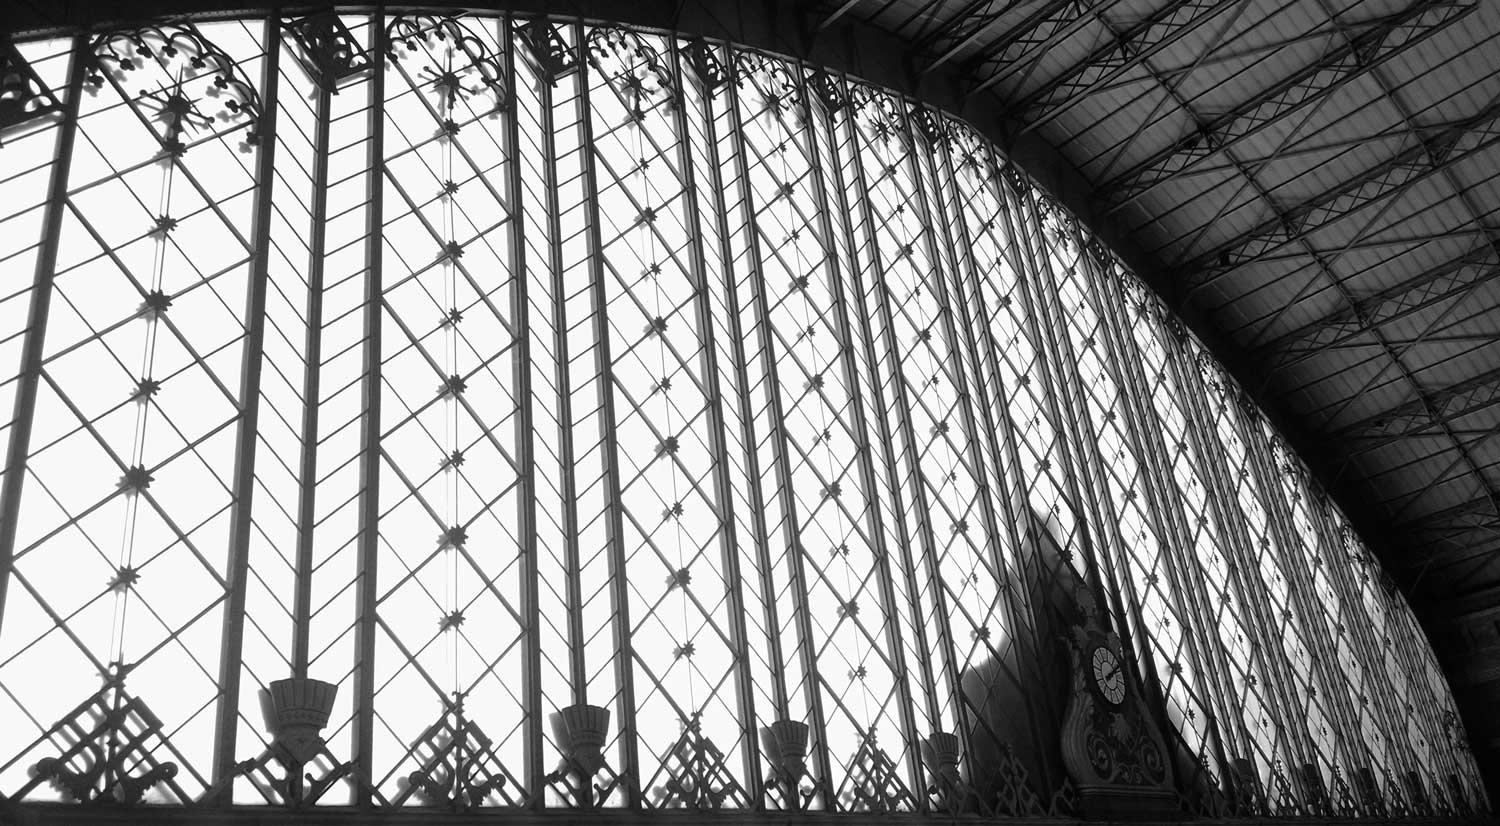 OG-Madrid_Atocha_Station-Madrid_Spain-062015-BW-WEB-1500.jpg